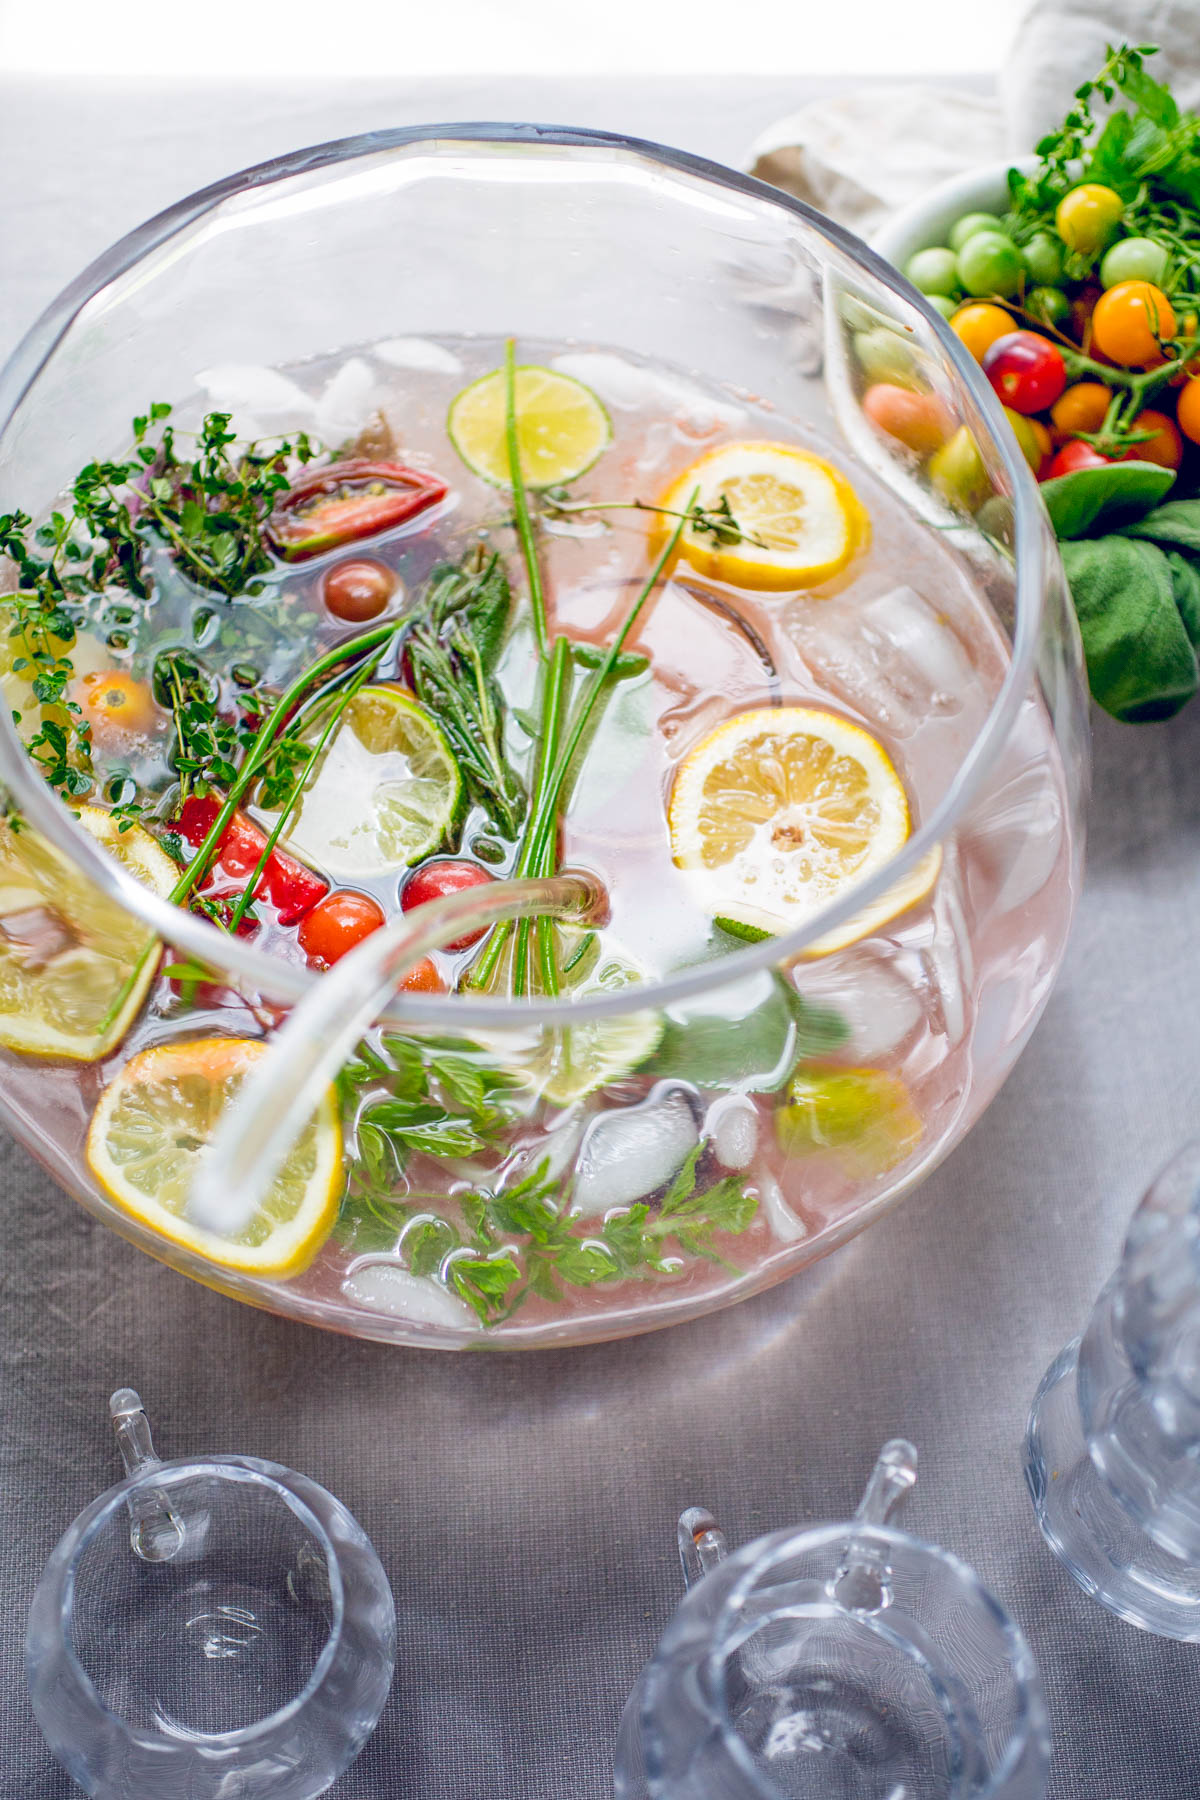 10 Drink and Cocktail Recipes To Keep You Cool This Summer!